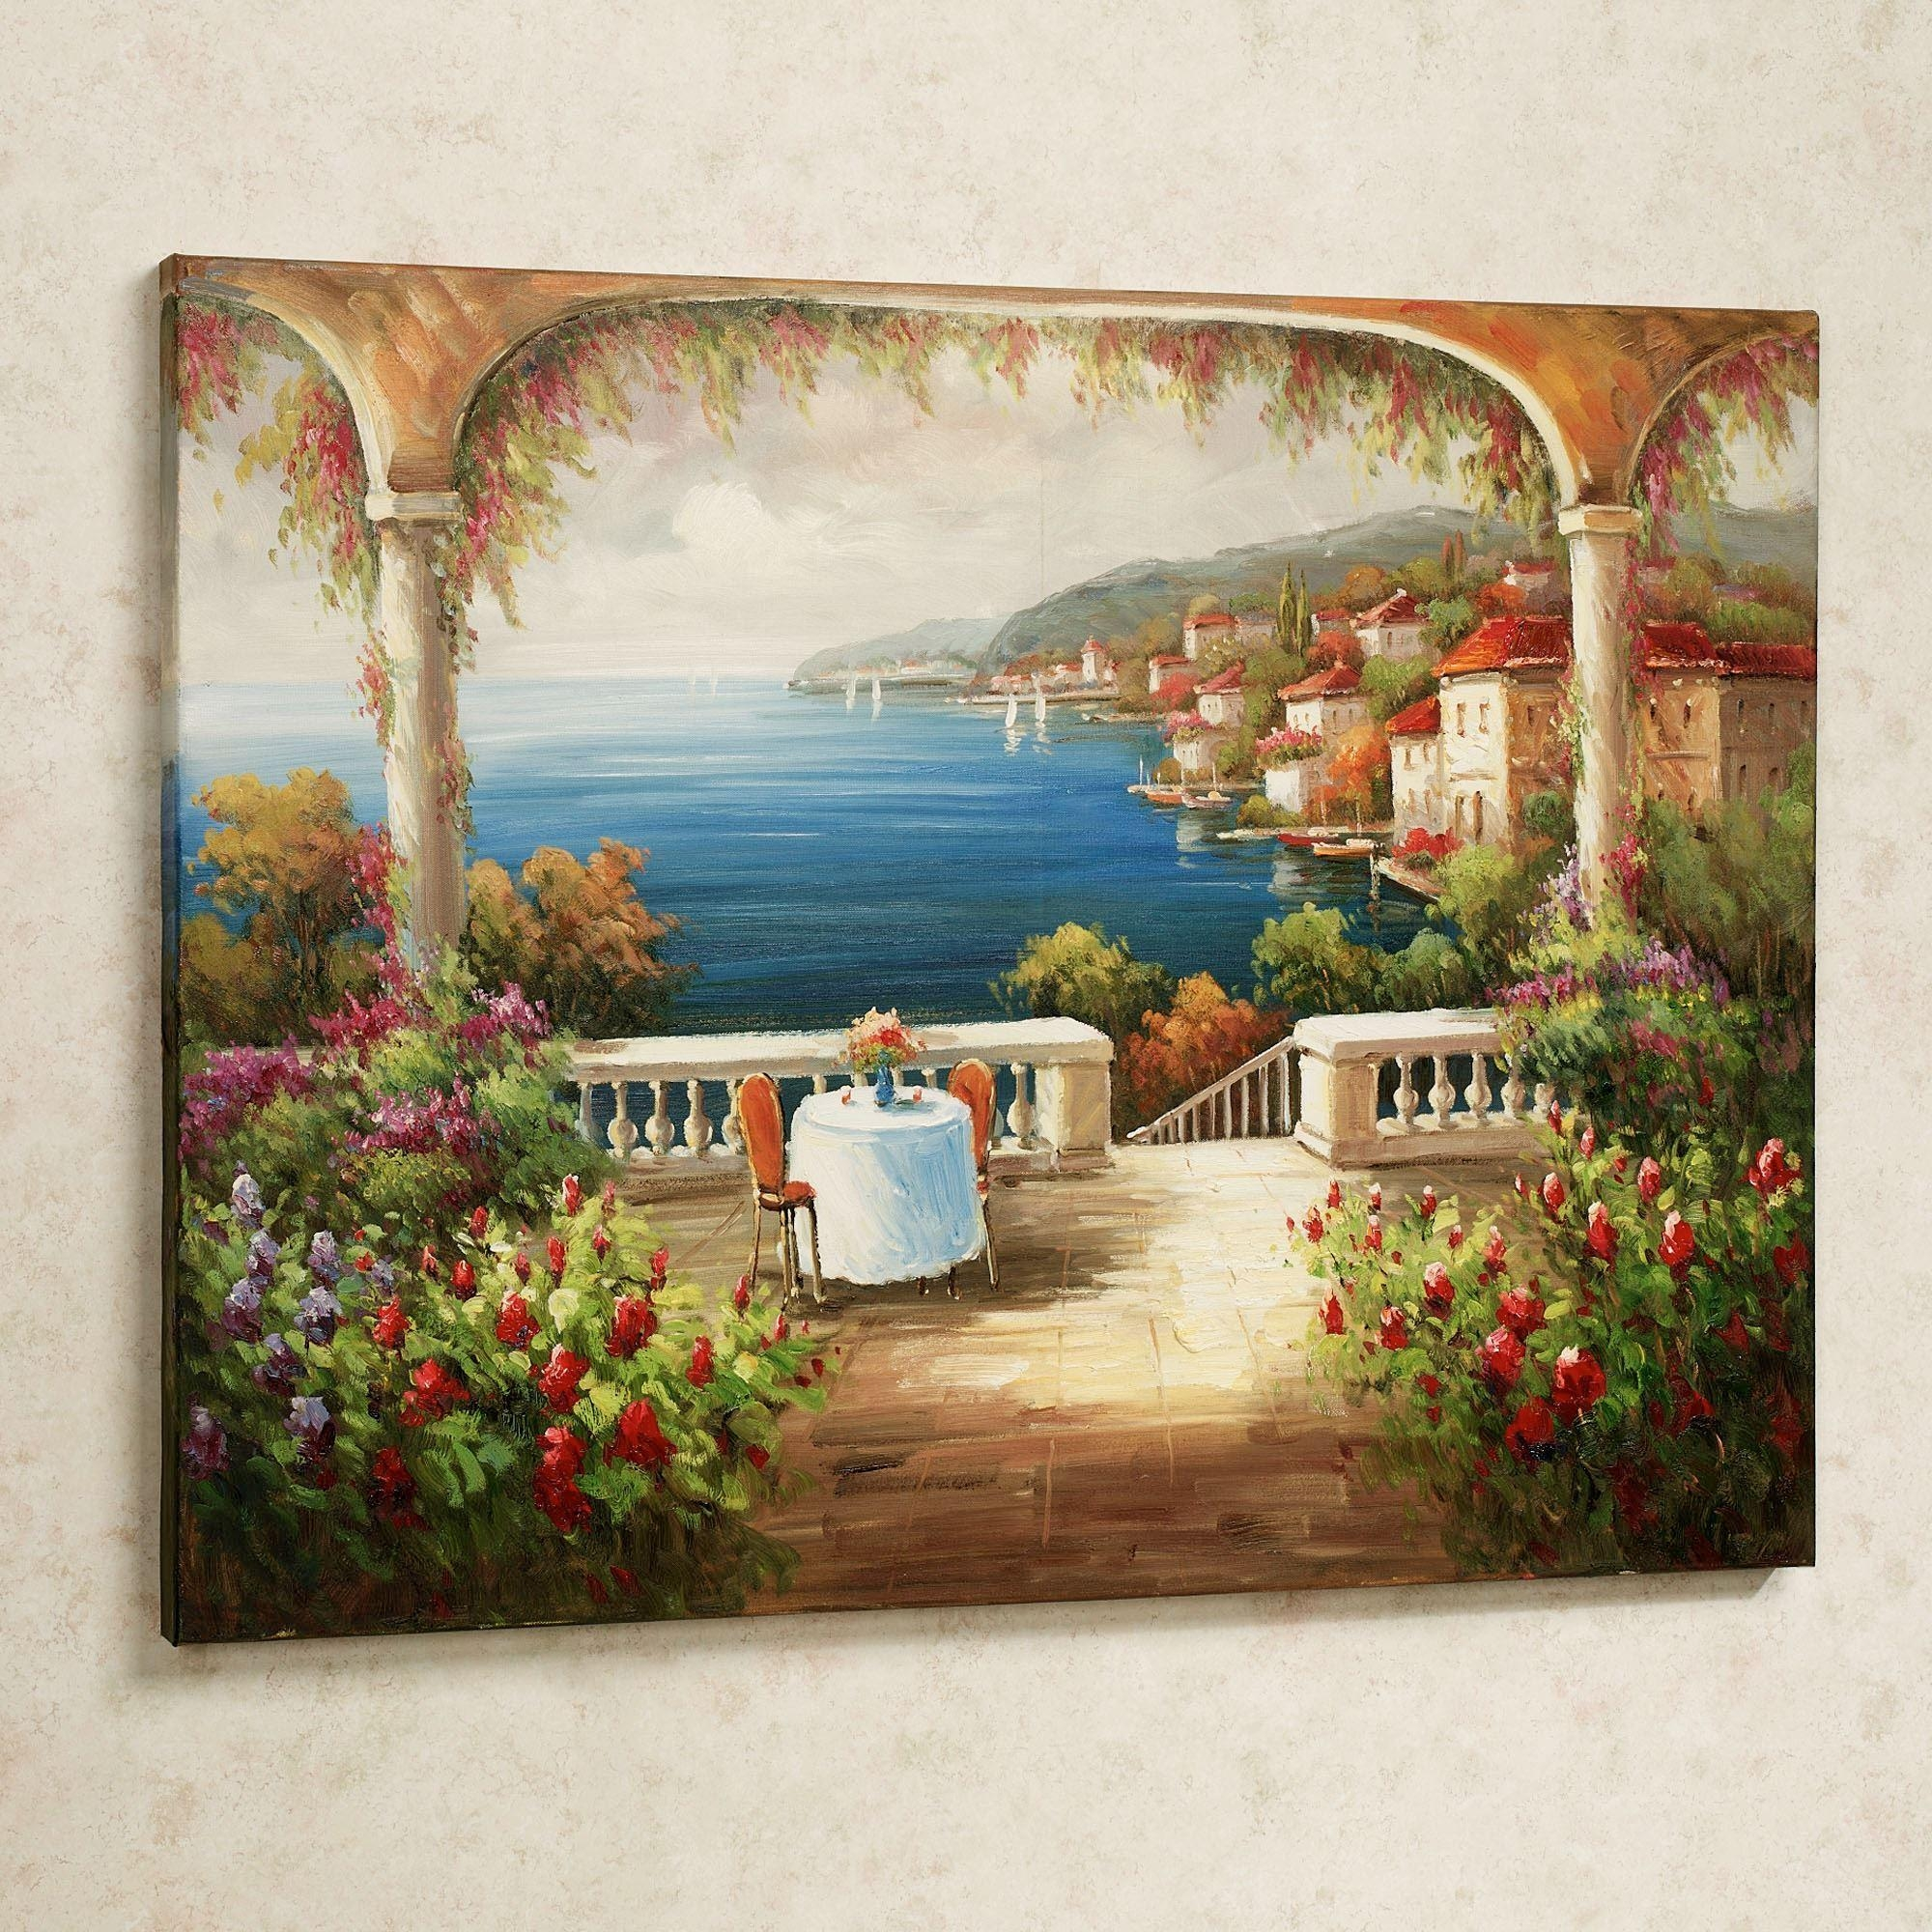 Lunch With A View Handpainted Canvas Art Inside Tuscany Wall Art (Image 5 of 20)